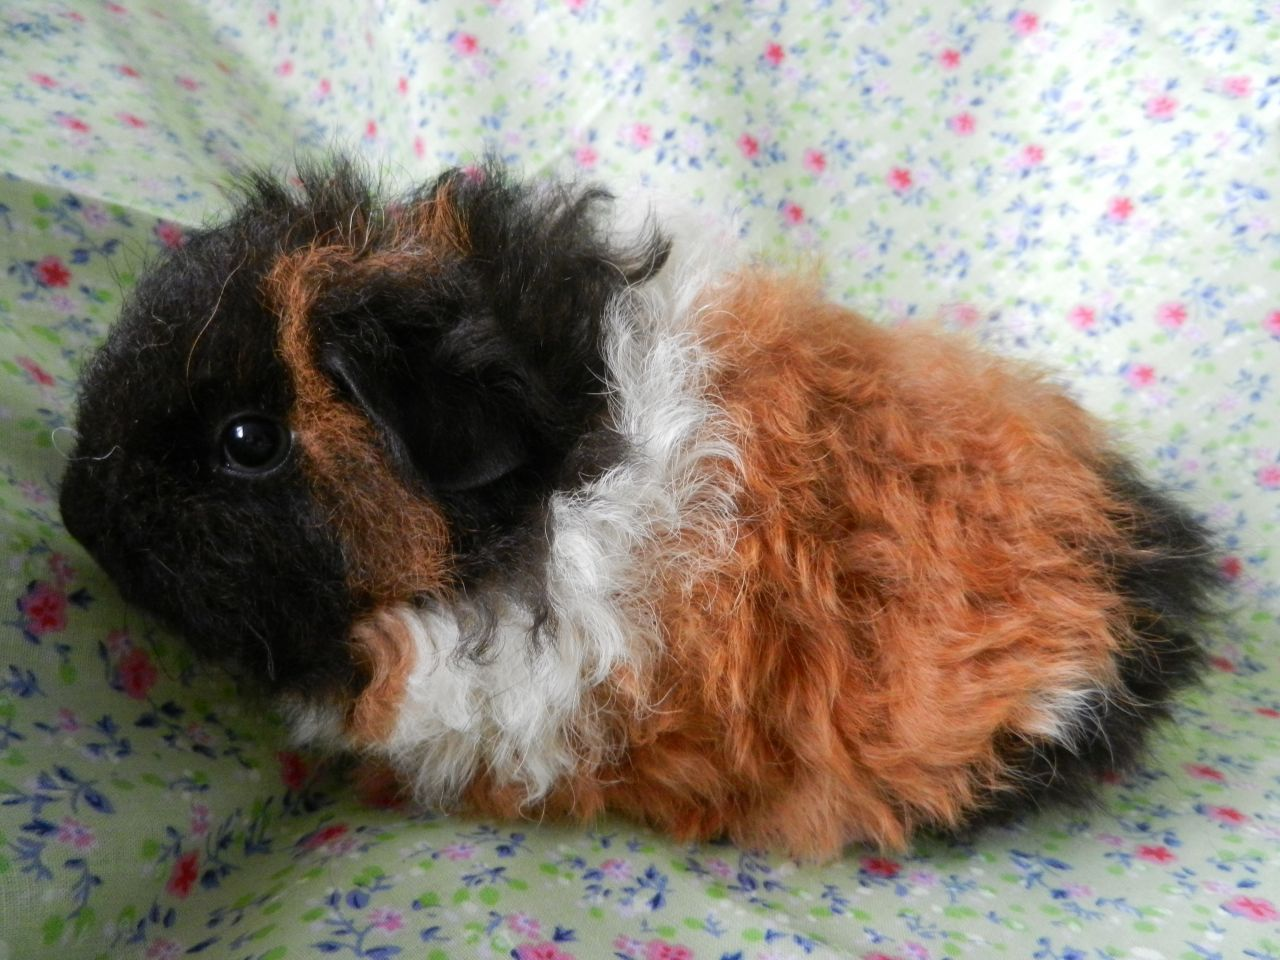 Top 12 Different Types of Guinea Pig Breeds | Guinea pig breeding ...